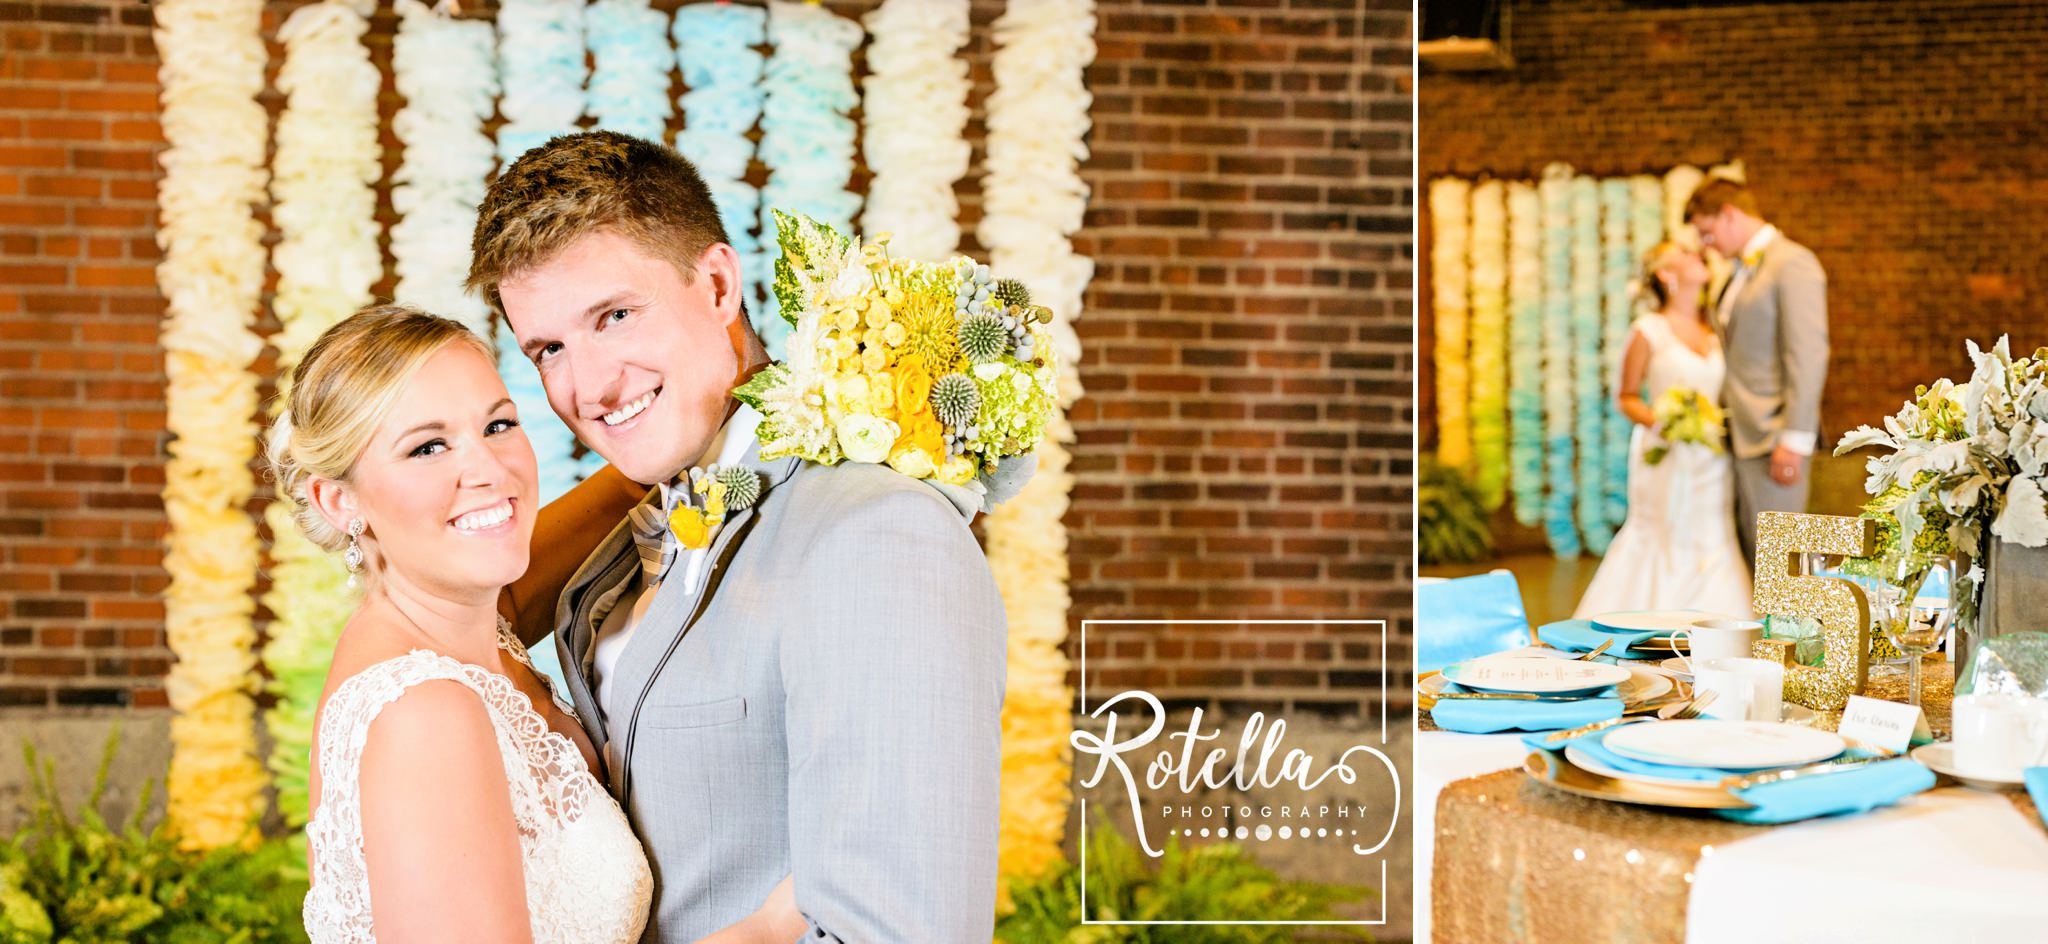 Bride and groom in front of ceremony backdrop